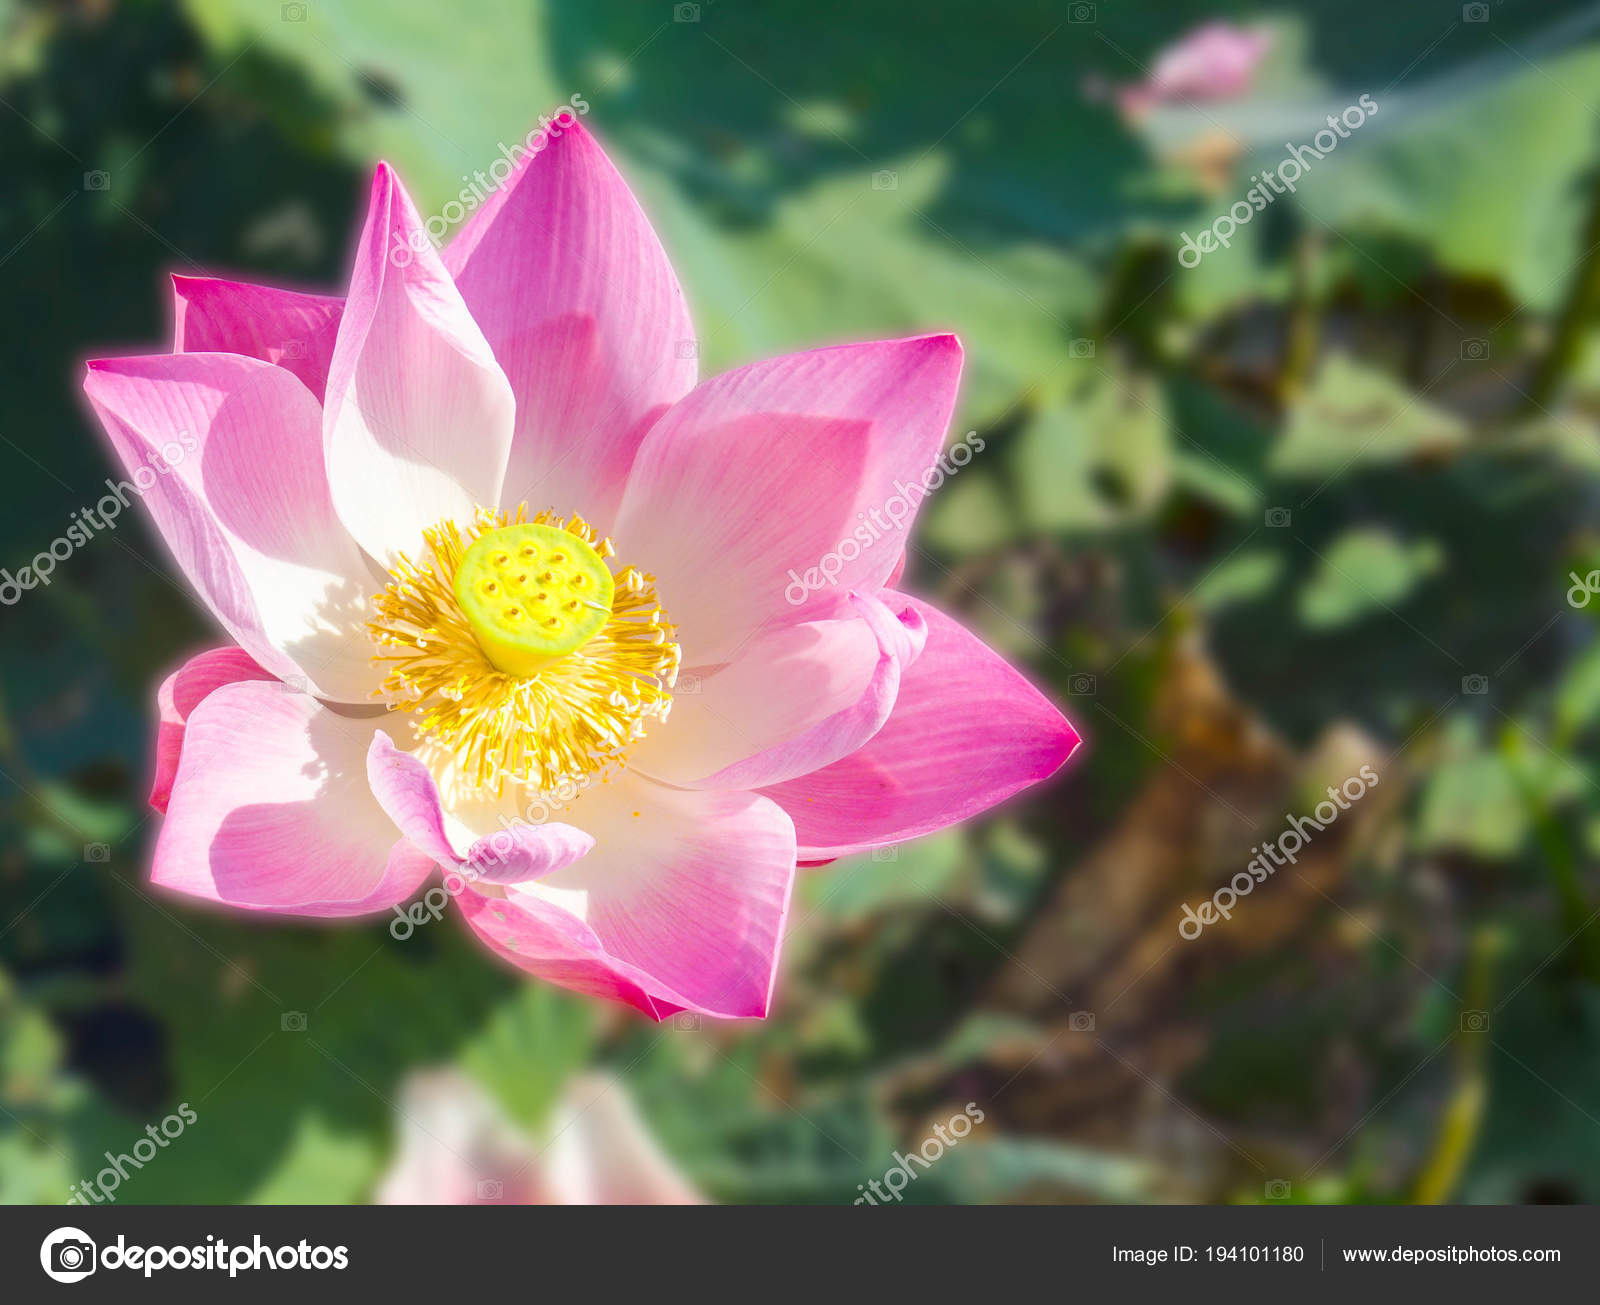 Beautiful lotus flower is the symbol of the buddha thailand beautiful lotus flower is the symbol of the buddha thailand photo by asaneephoto izmirmasajfo